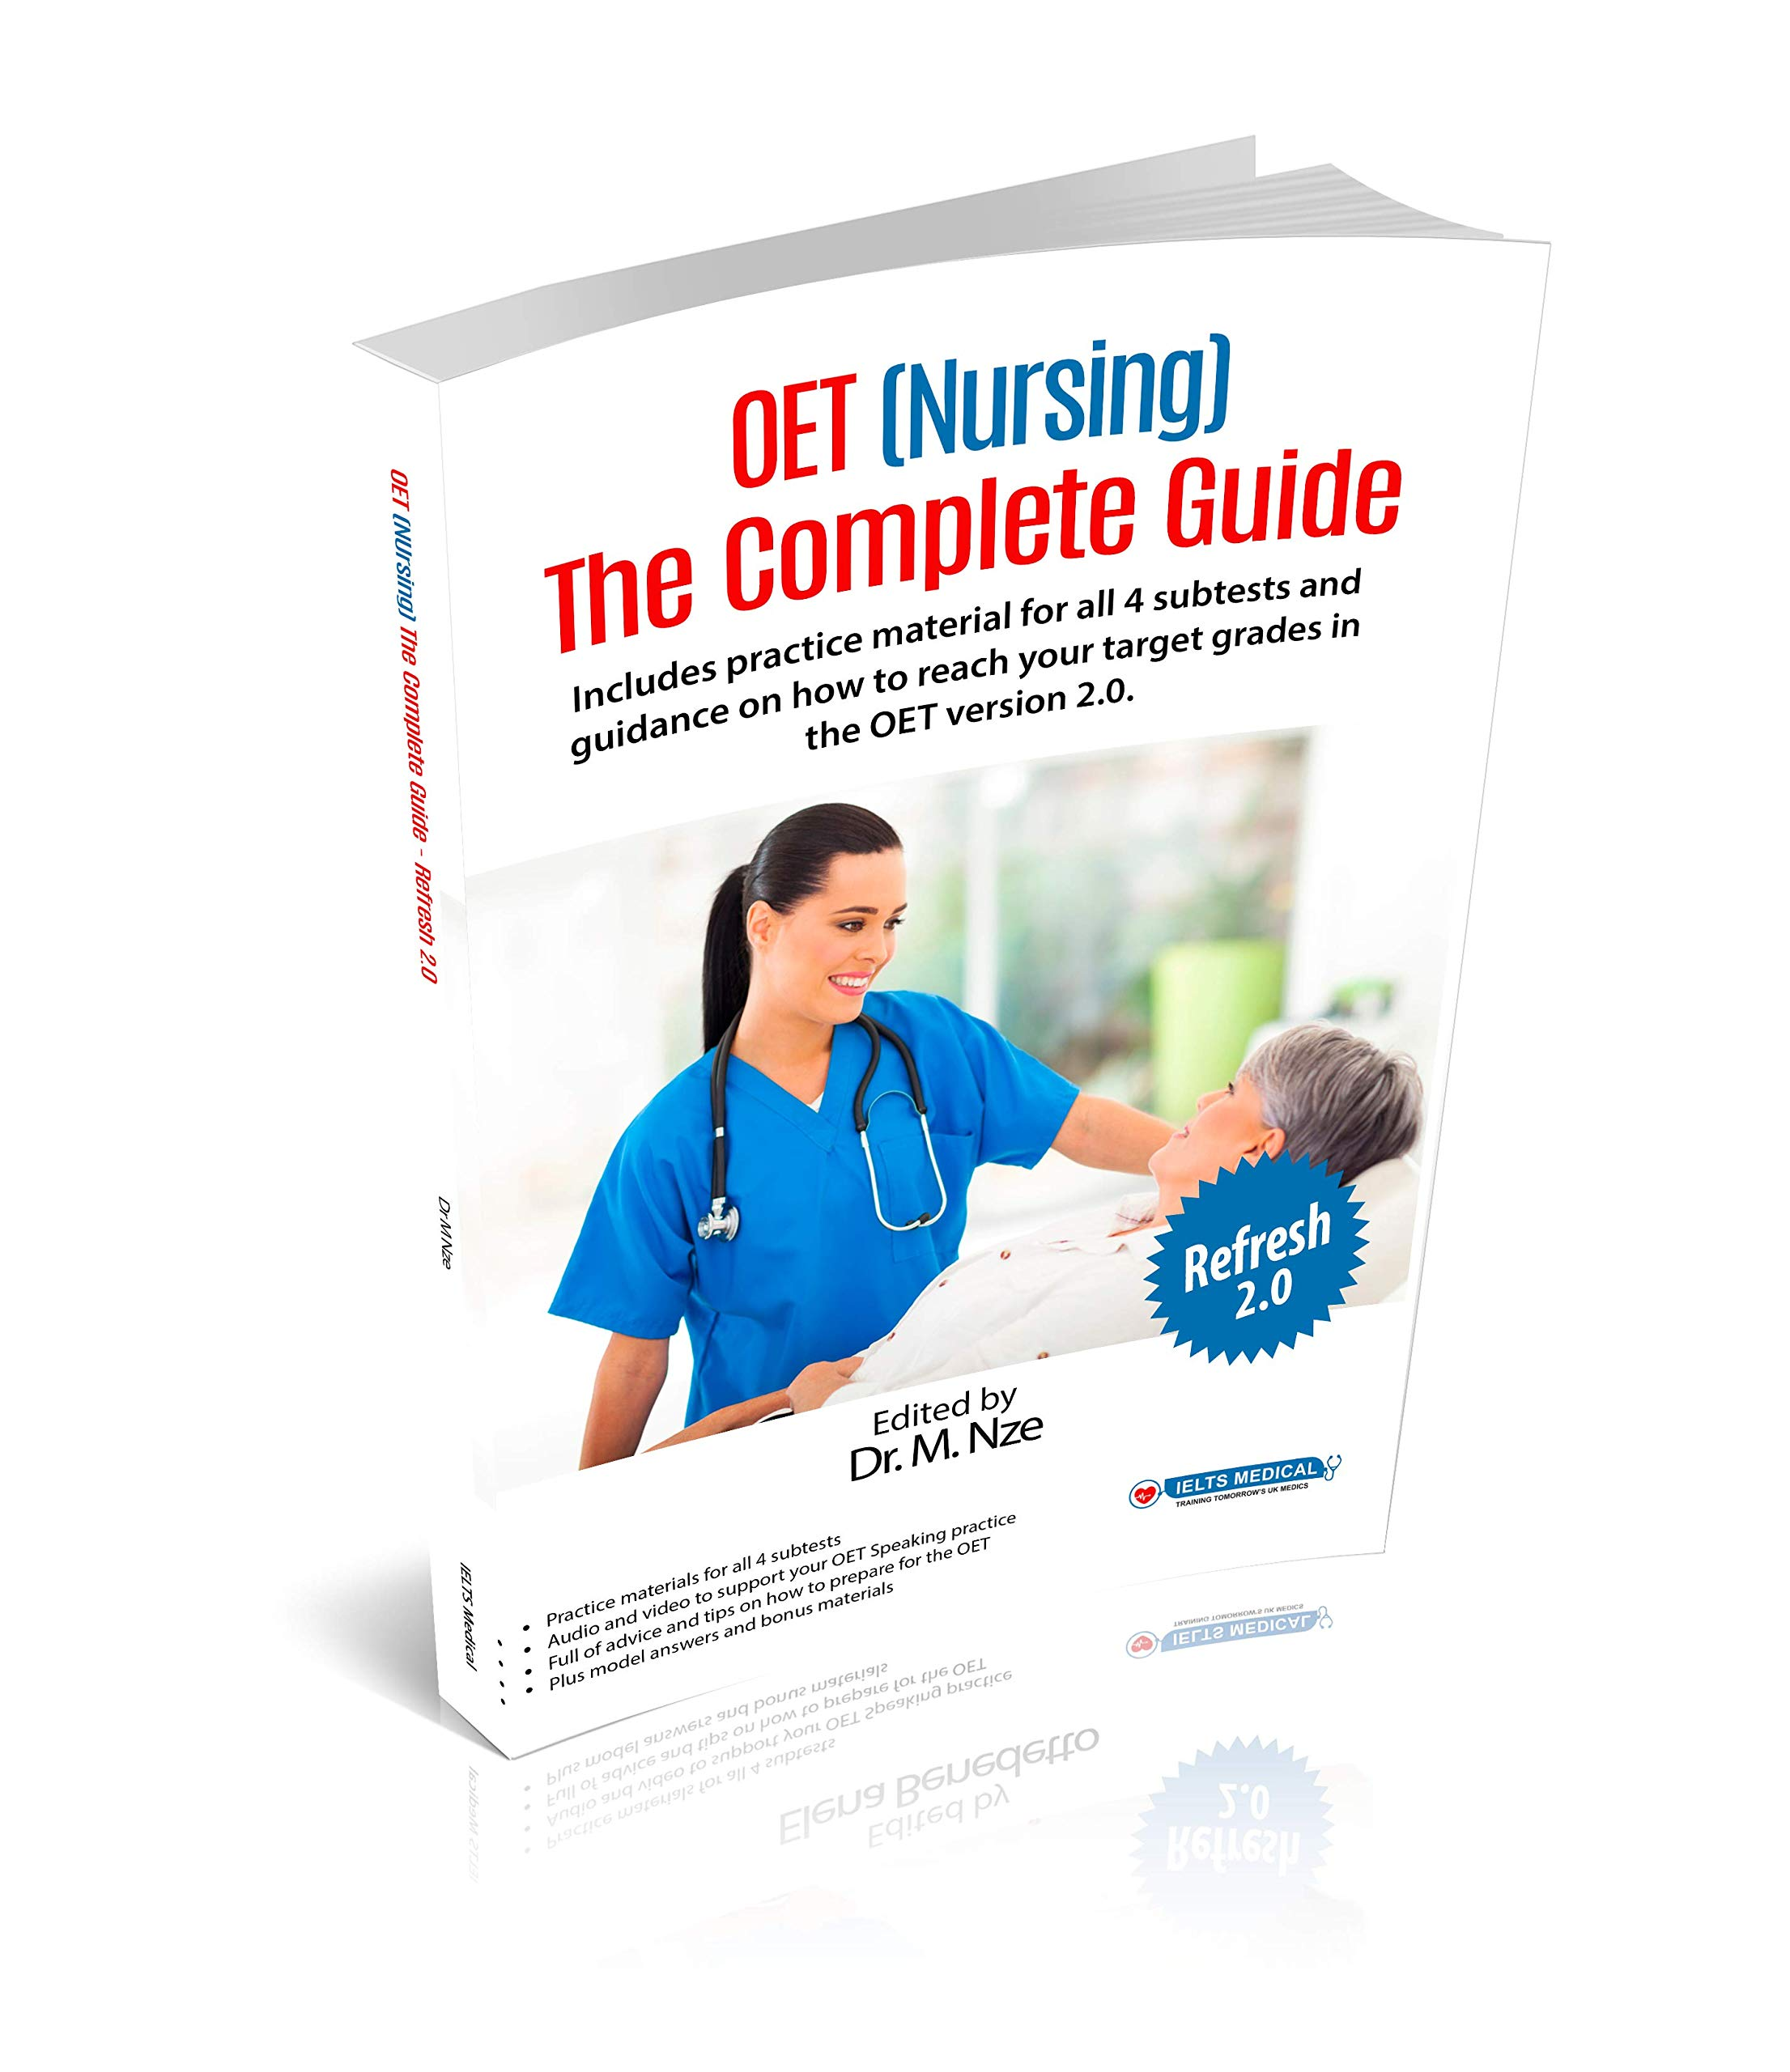 Buy OET (Nursing) The Complete Guide - Refresh 2.0 Complete Guide ...